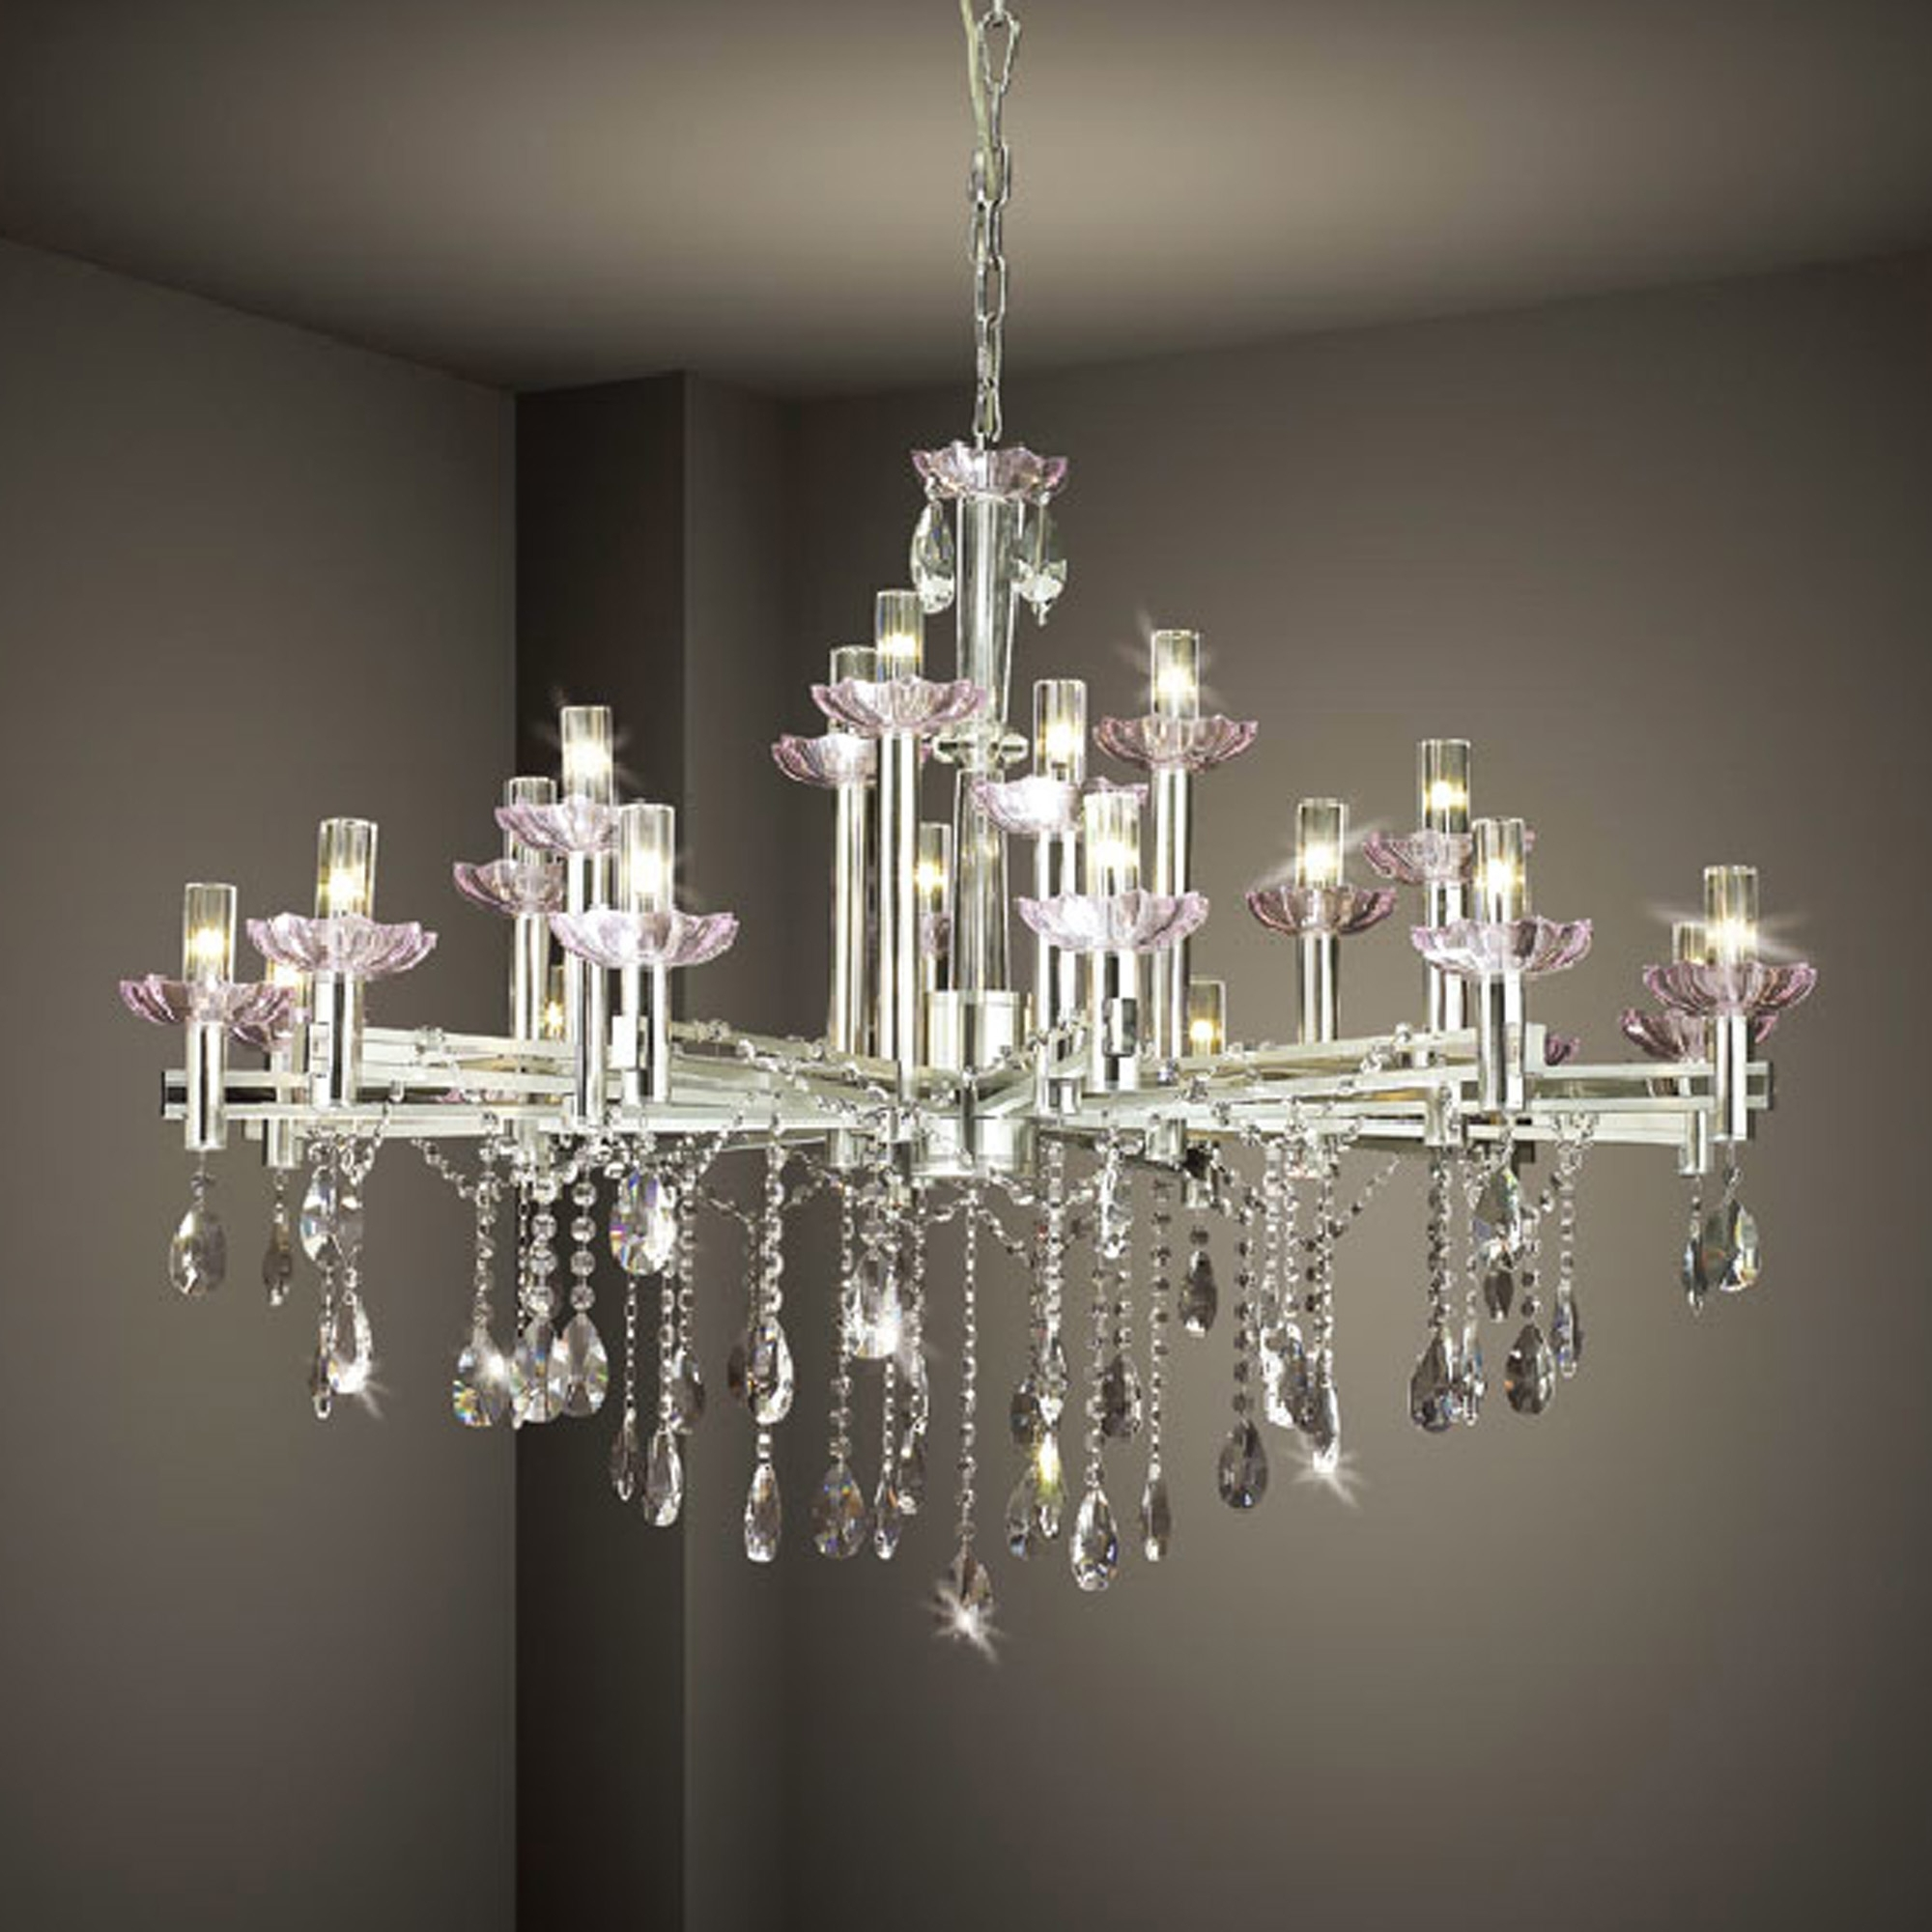 Hanging Modern Crystal Chandelier Lighting With Stainless Steel With Latest White And Crystal Chandeliers (View 6 of 20)